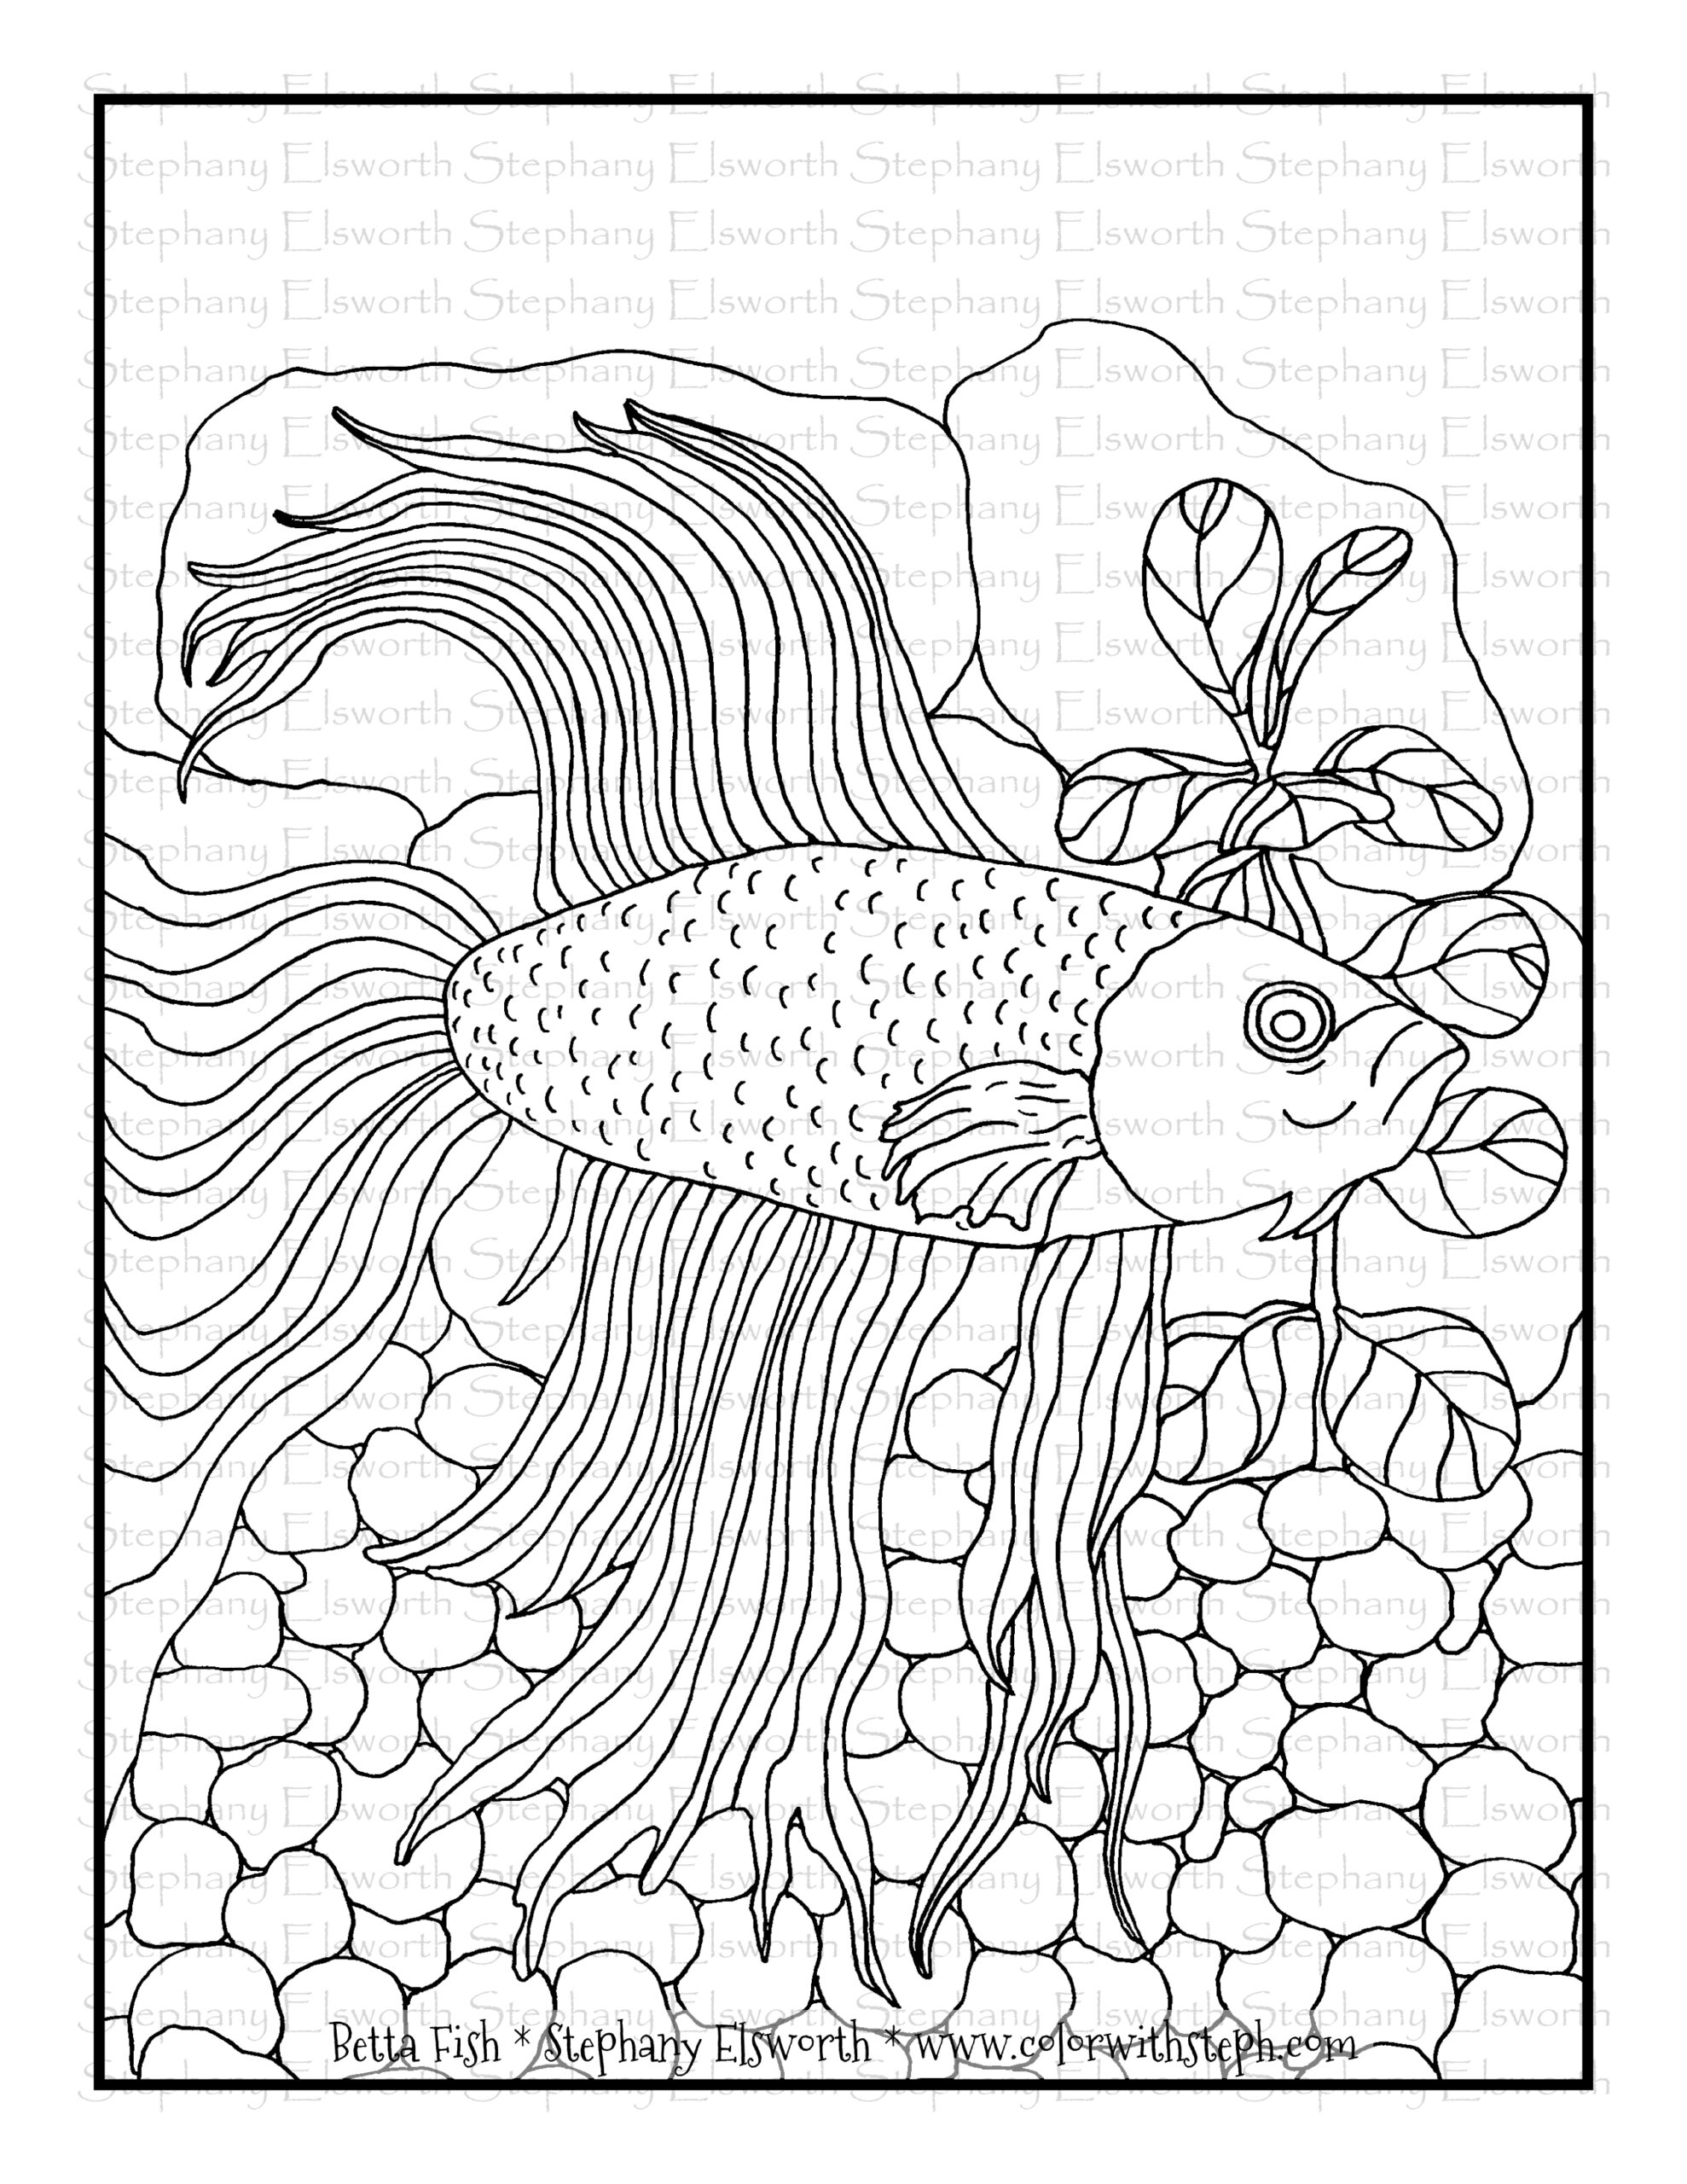 betta fish free printable coloring color with steph wm bronze christmas by number fre coloring pages Betta Coloring Page